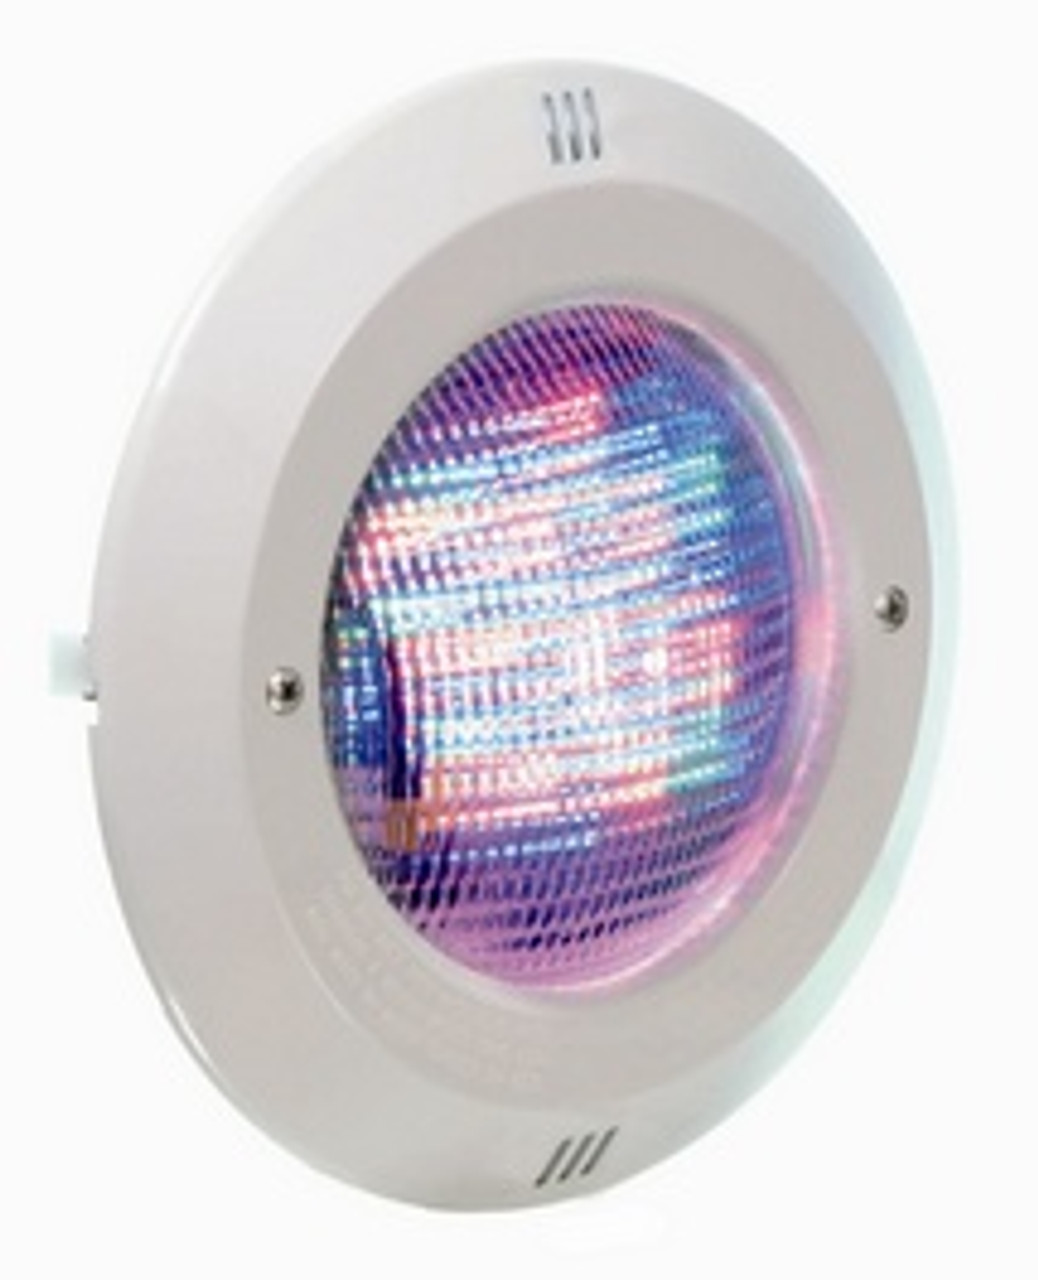 Astral Lumiplus PAR 56 RGB/Colour change LED swimming pool light and guts